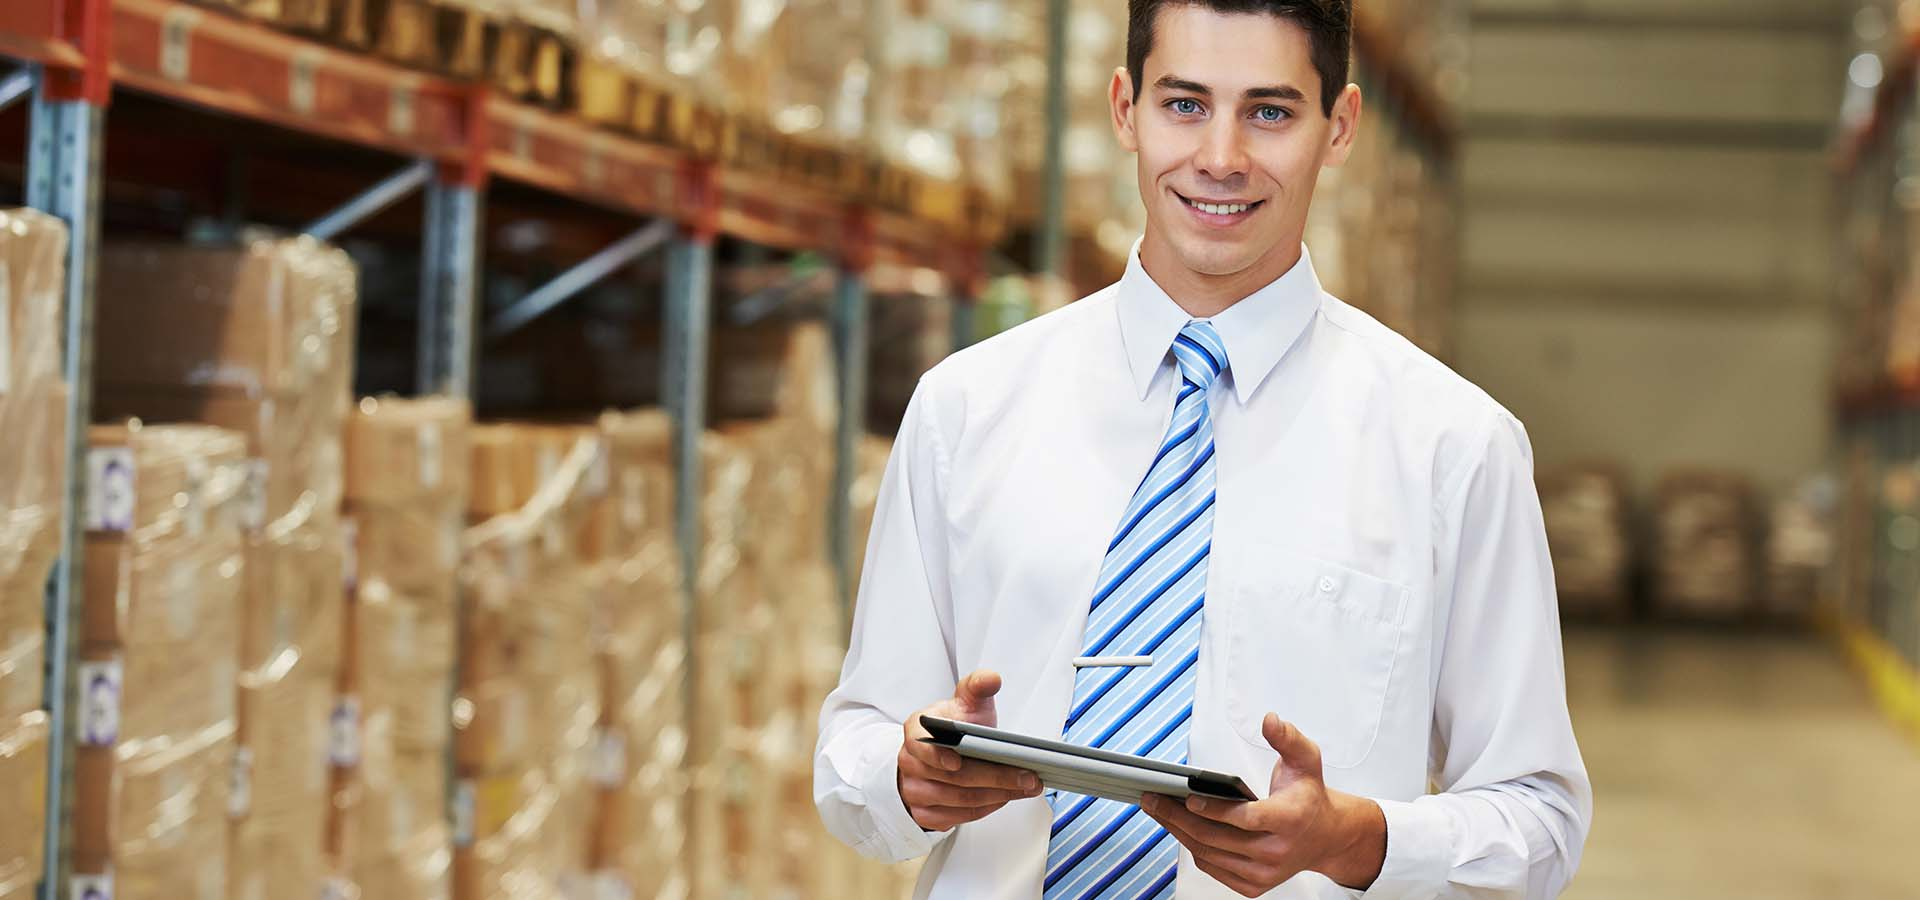 Inventory Management: A to Z of Best Practices